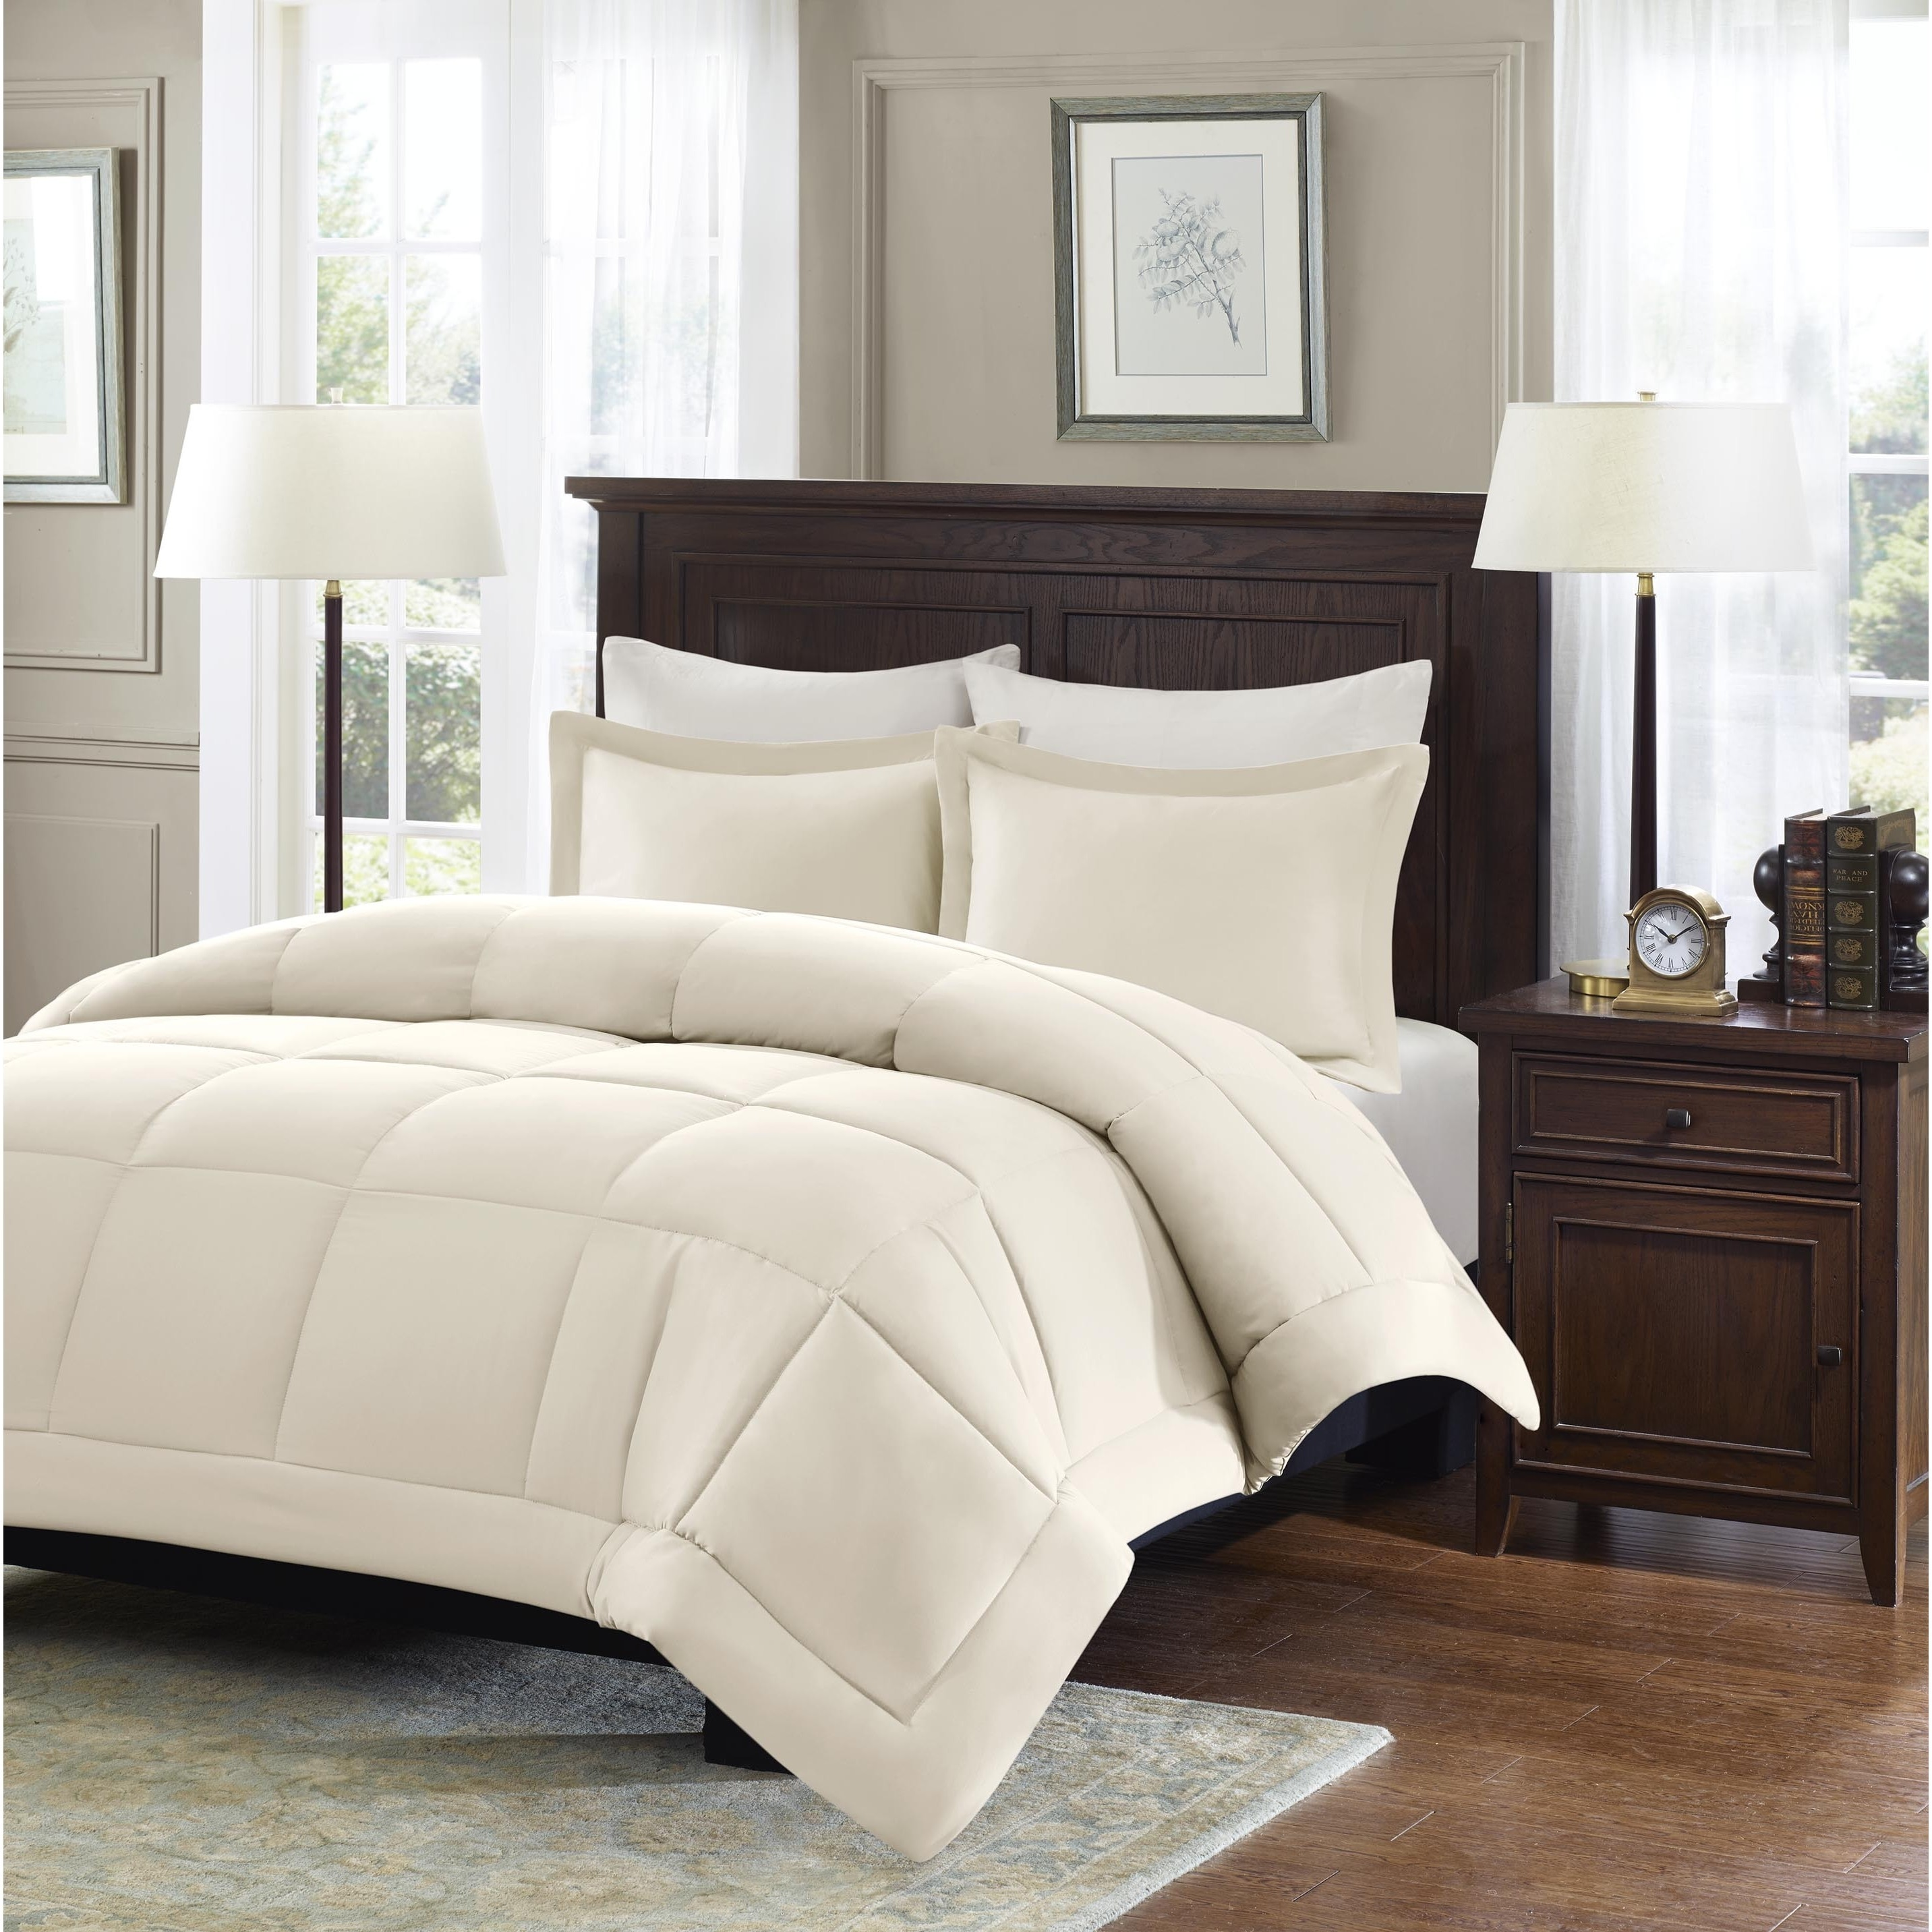 comfort classics belford microcell down alternative comforter mini set walmartcom